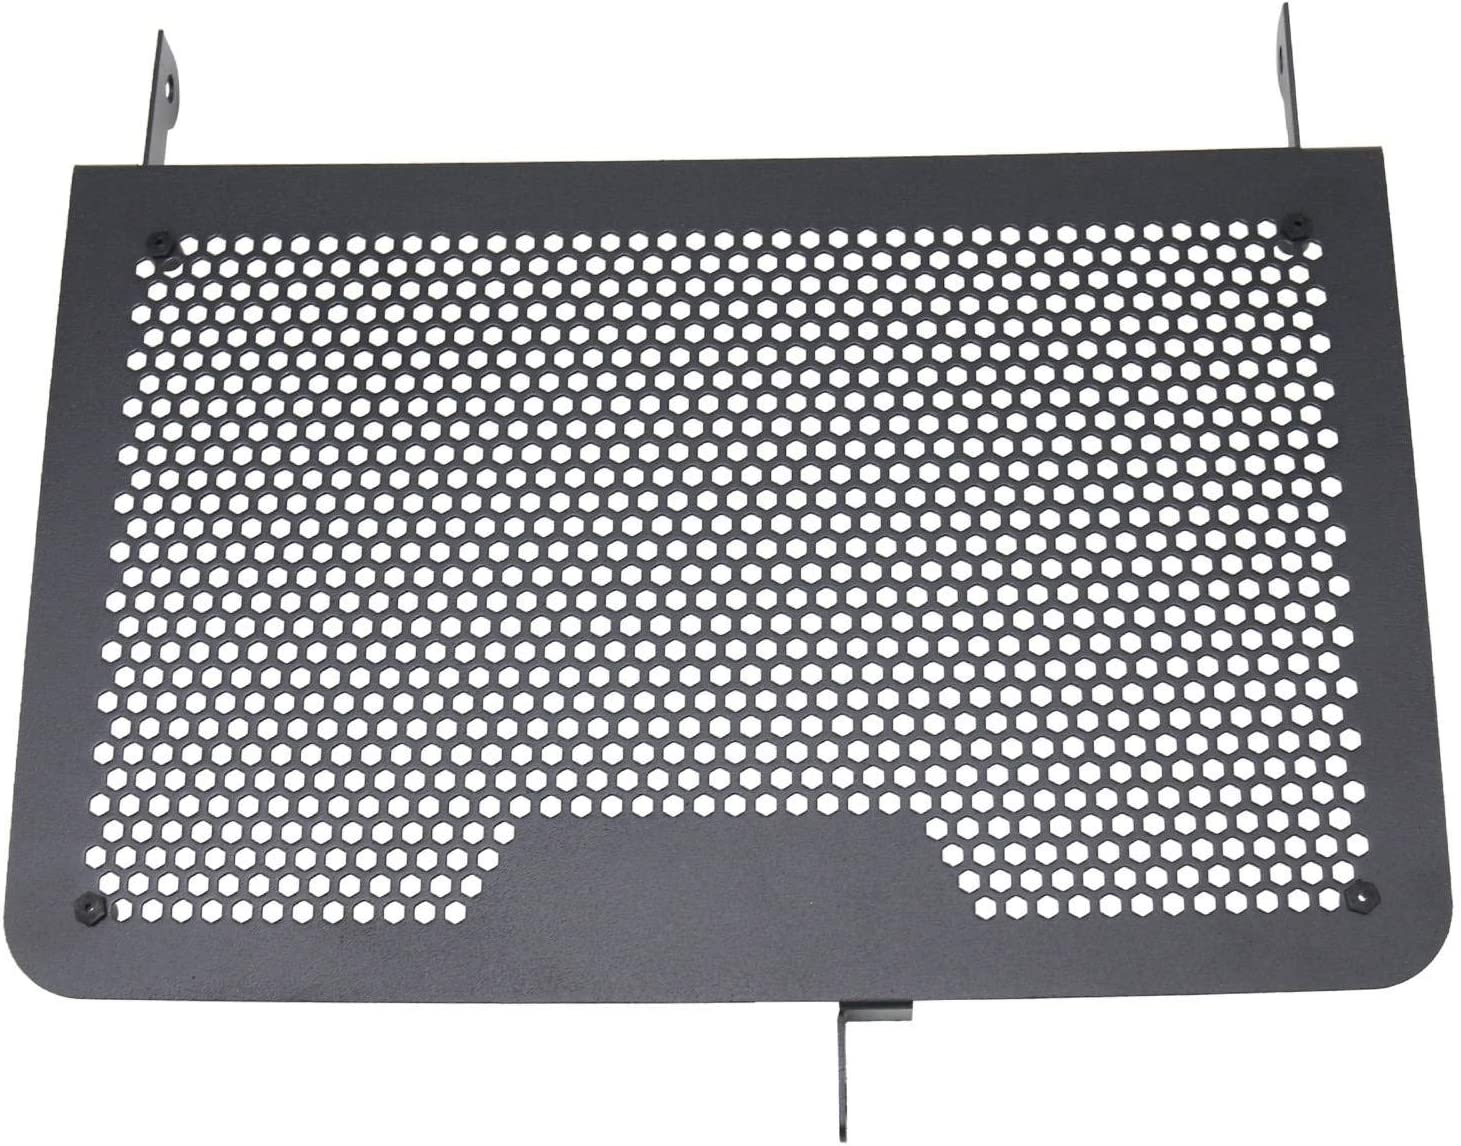 PQZATX Motorcycle Radiator Guard Protector Grille Grill Cover for Gsr 750 Gsr750 2011-2014 Motorcycle Accessories